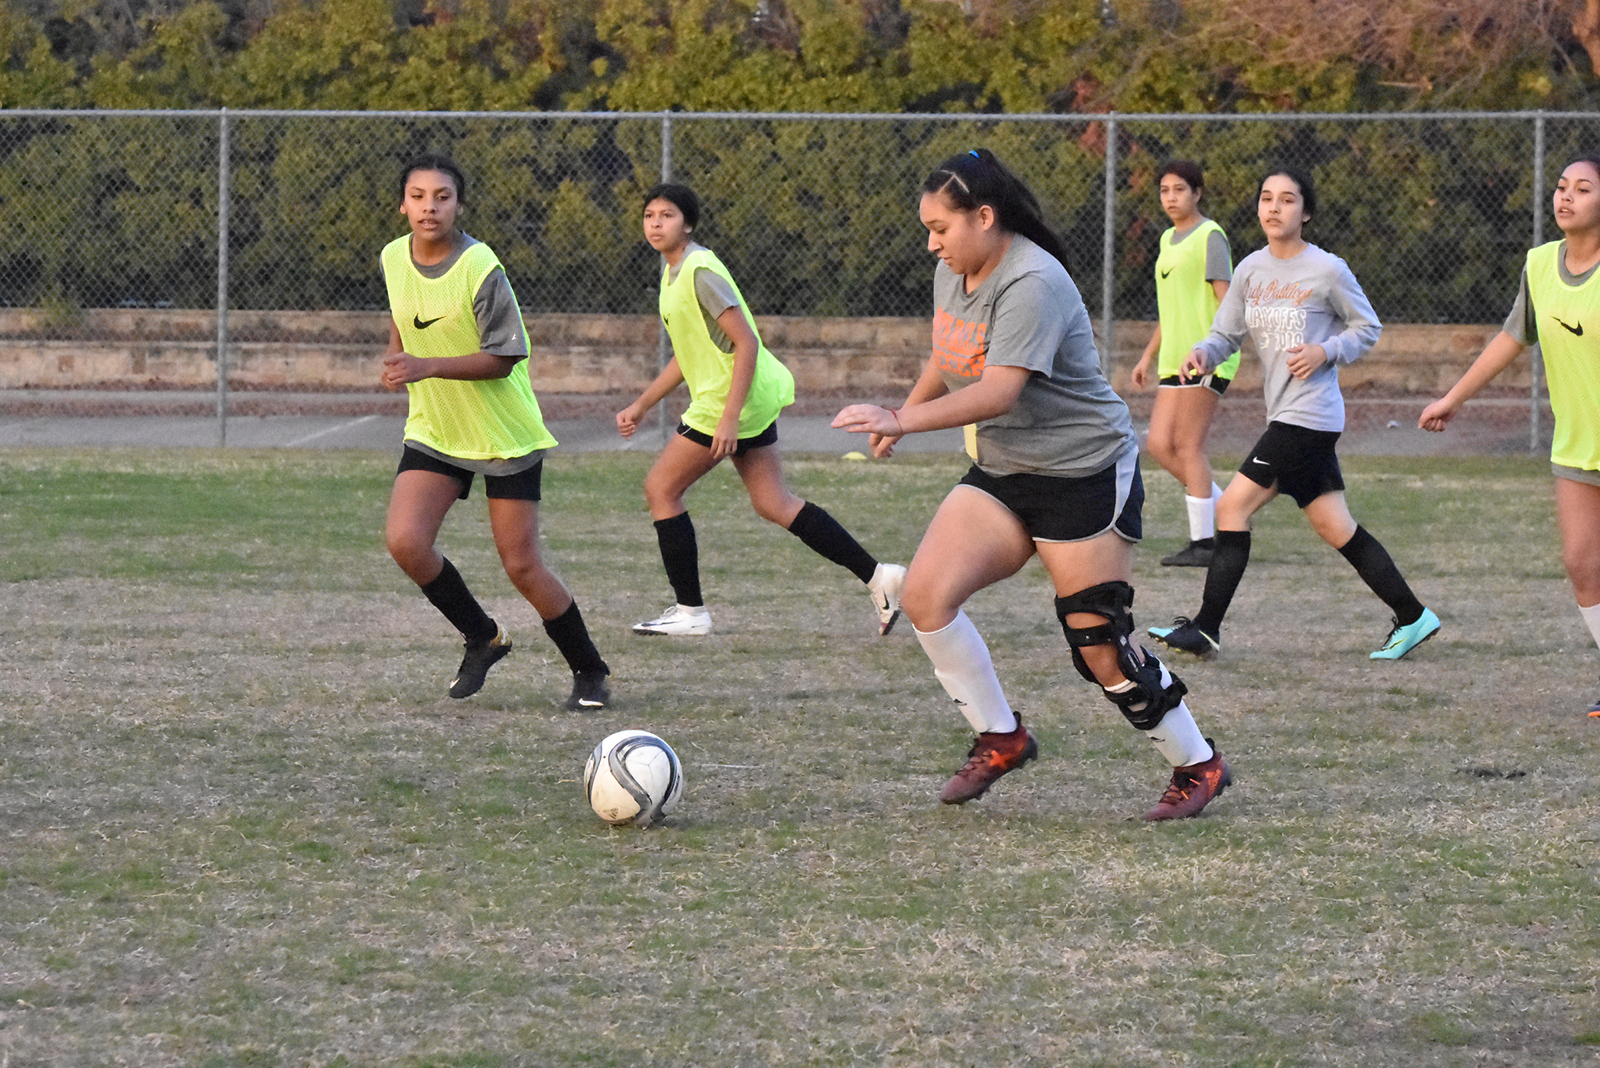 North Dallas Lady Bulldogs hold soccer tryouts last week